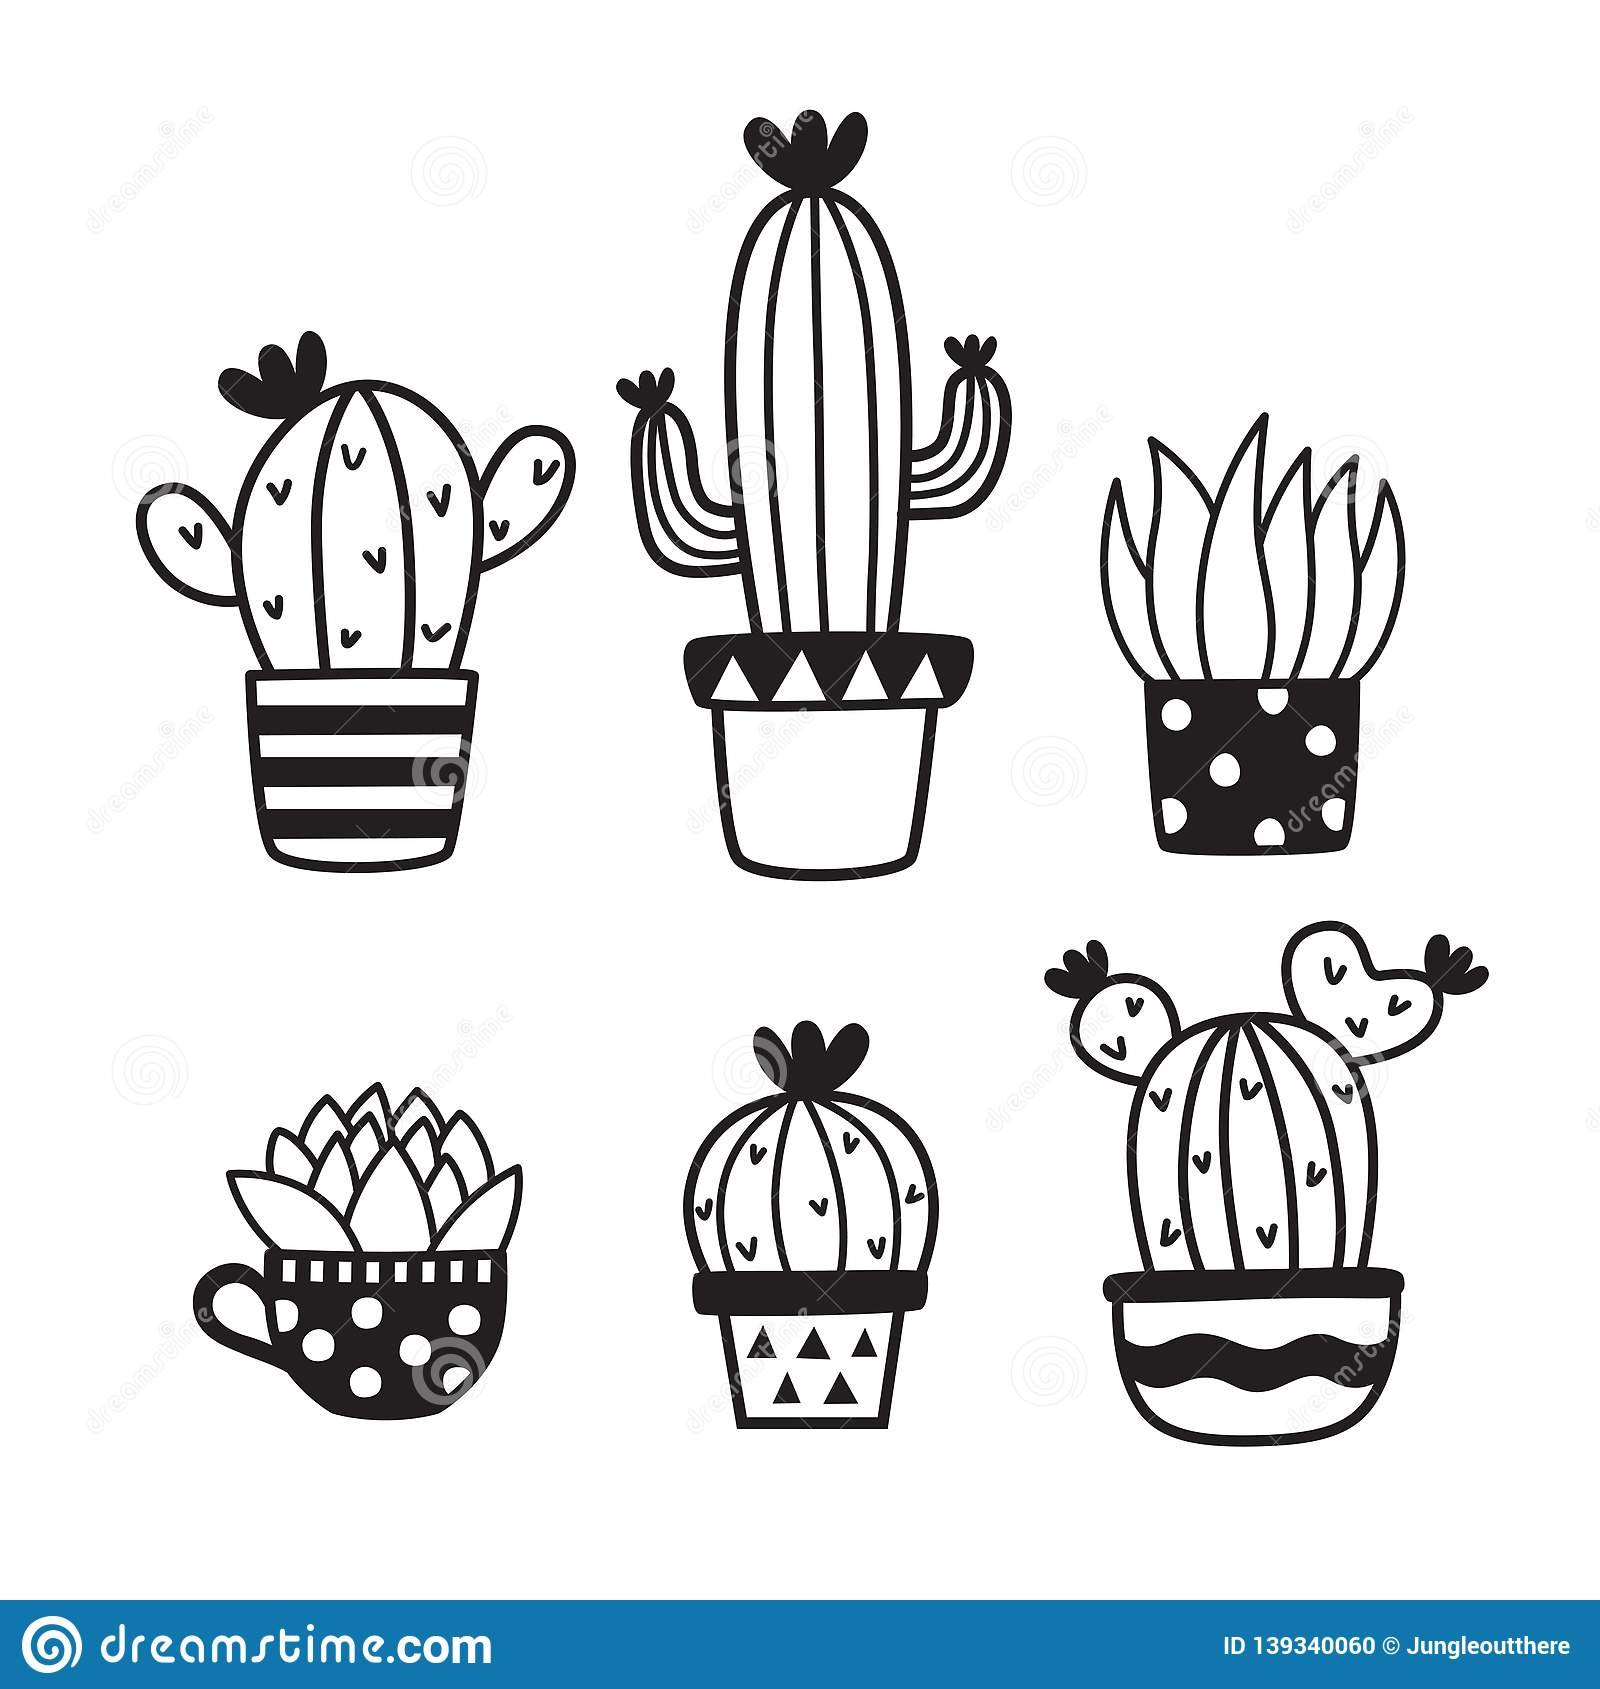 Cute Succulent And Cactus Hand Drawn Doodles Sketch Vector Illustration Stock Vector Illustration Of Simple Black 139340060